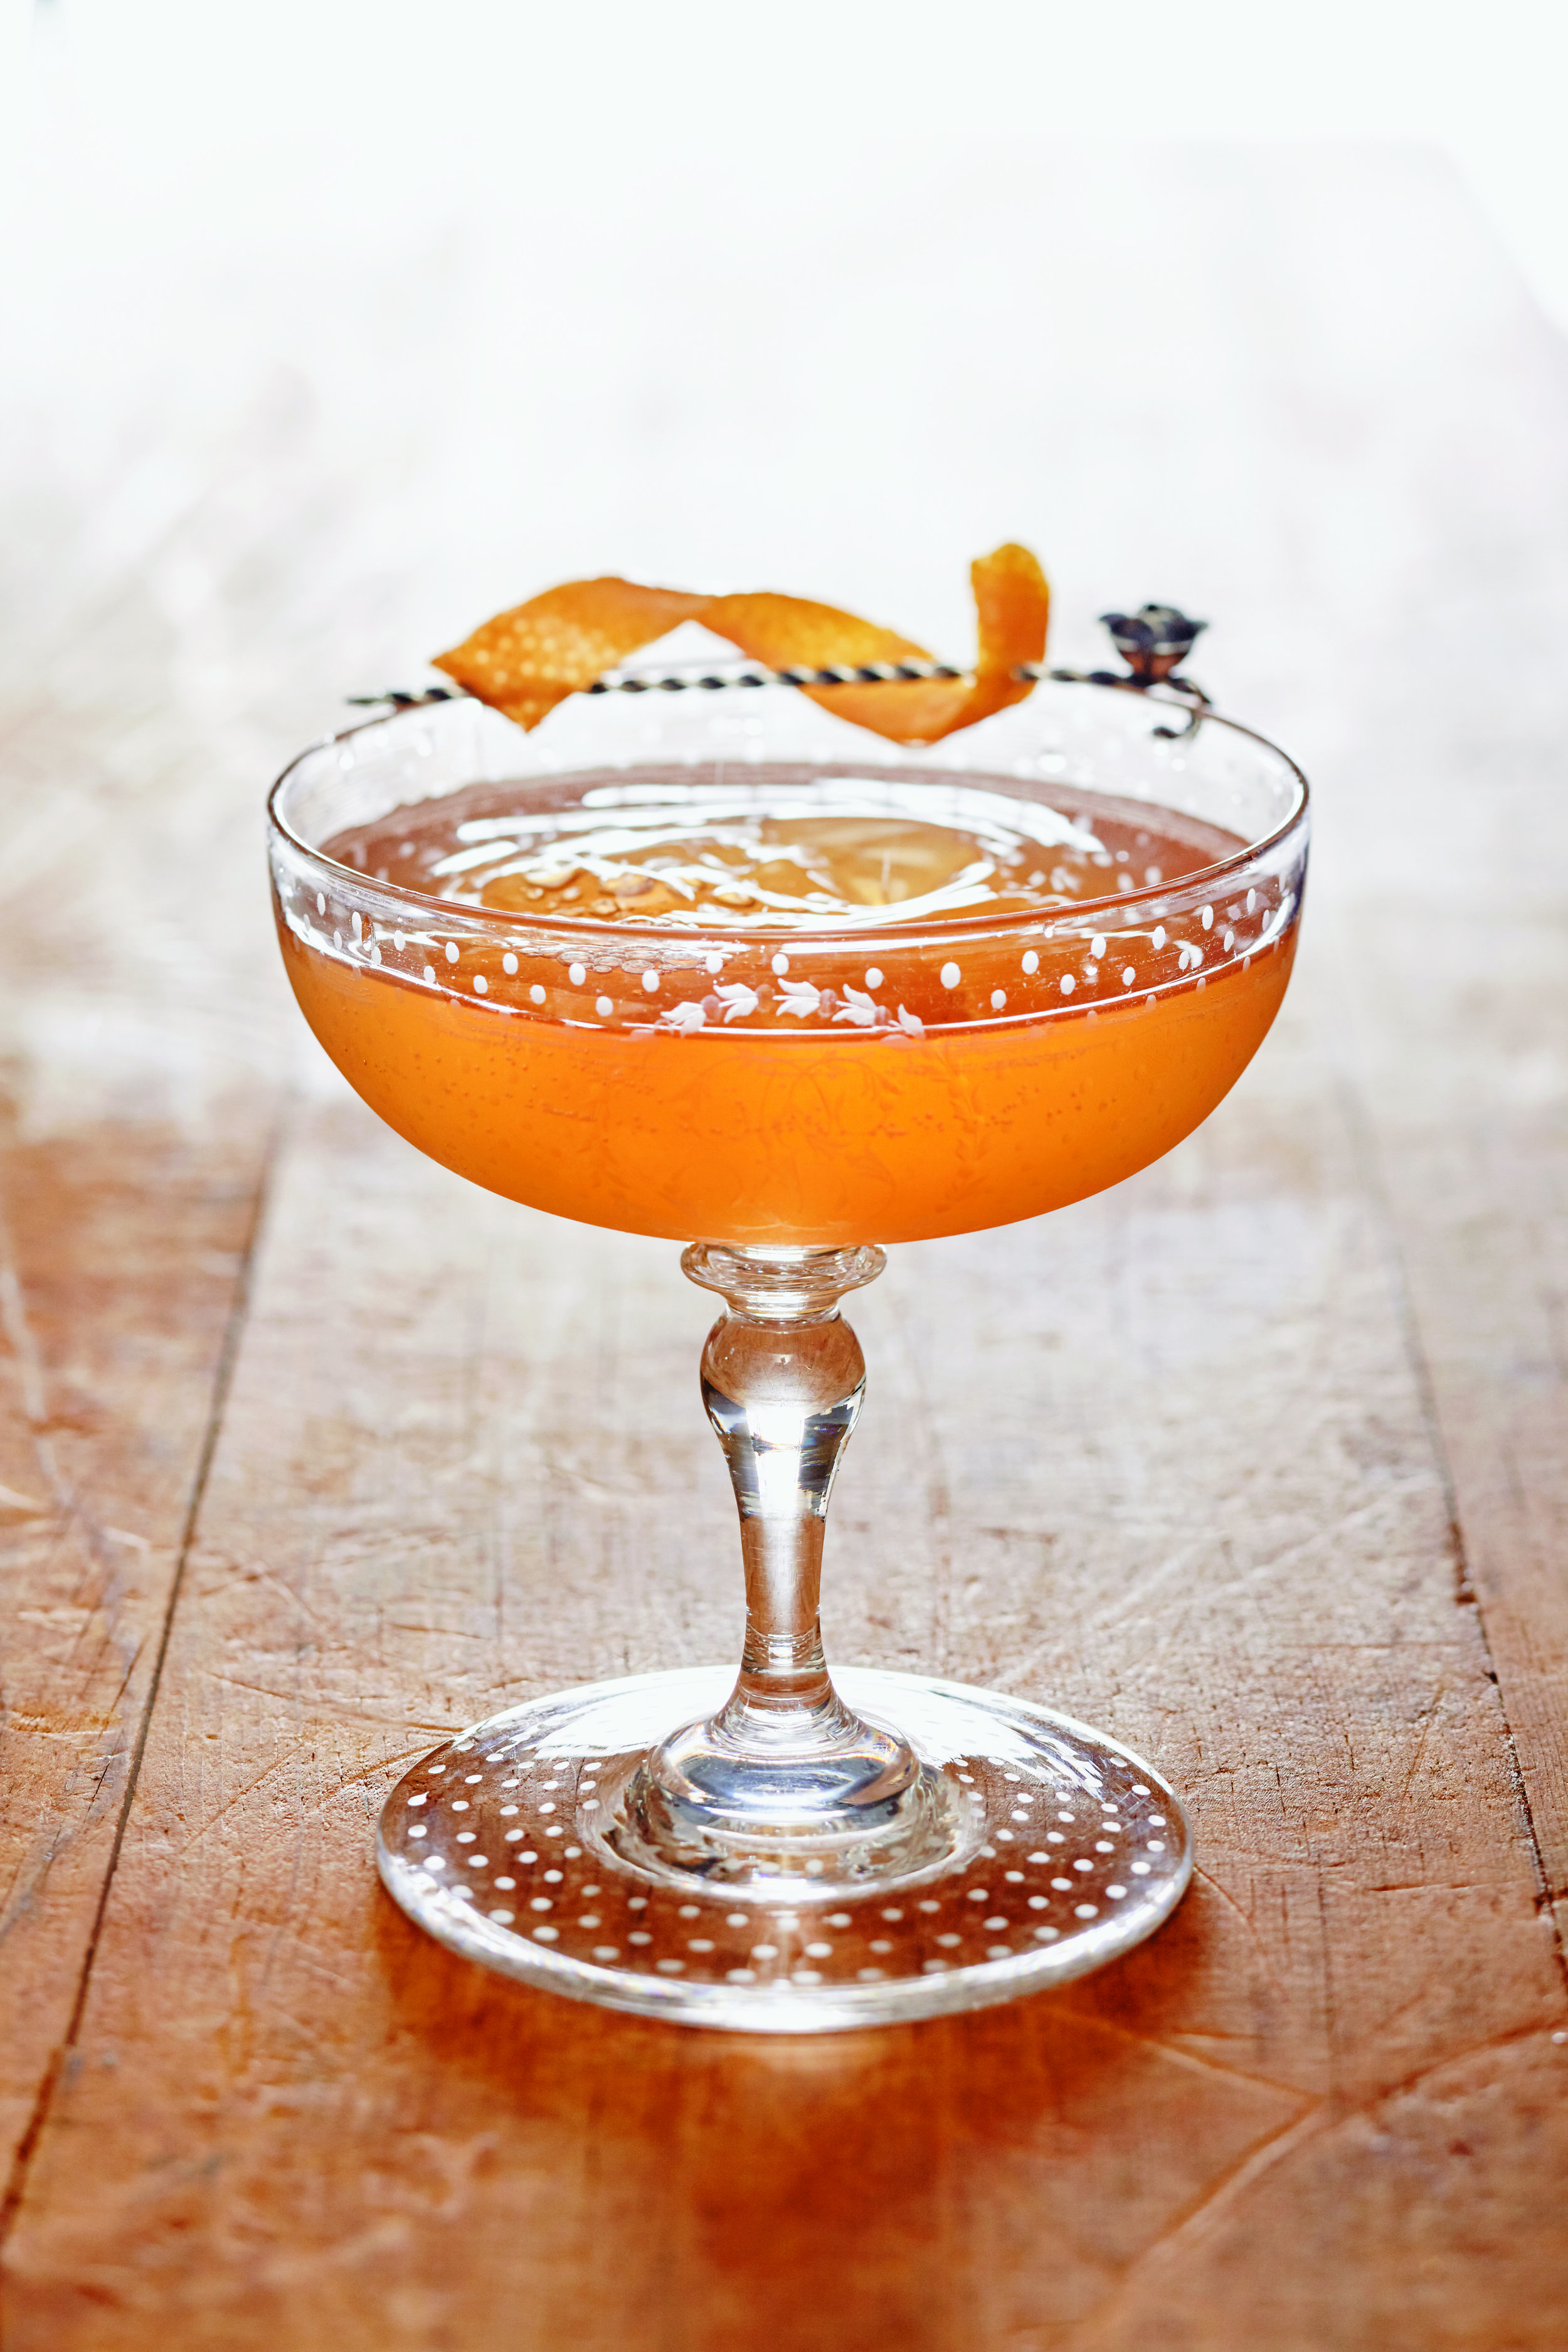 Warren Bobrow's Benny Goodman Fizz Recipe is Perfect for Infusing with Maui Waui